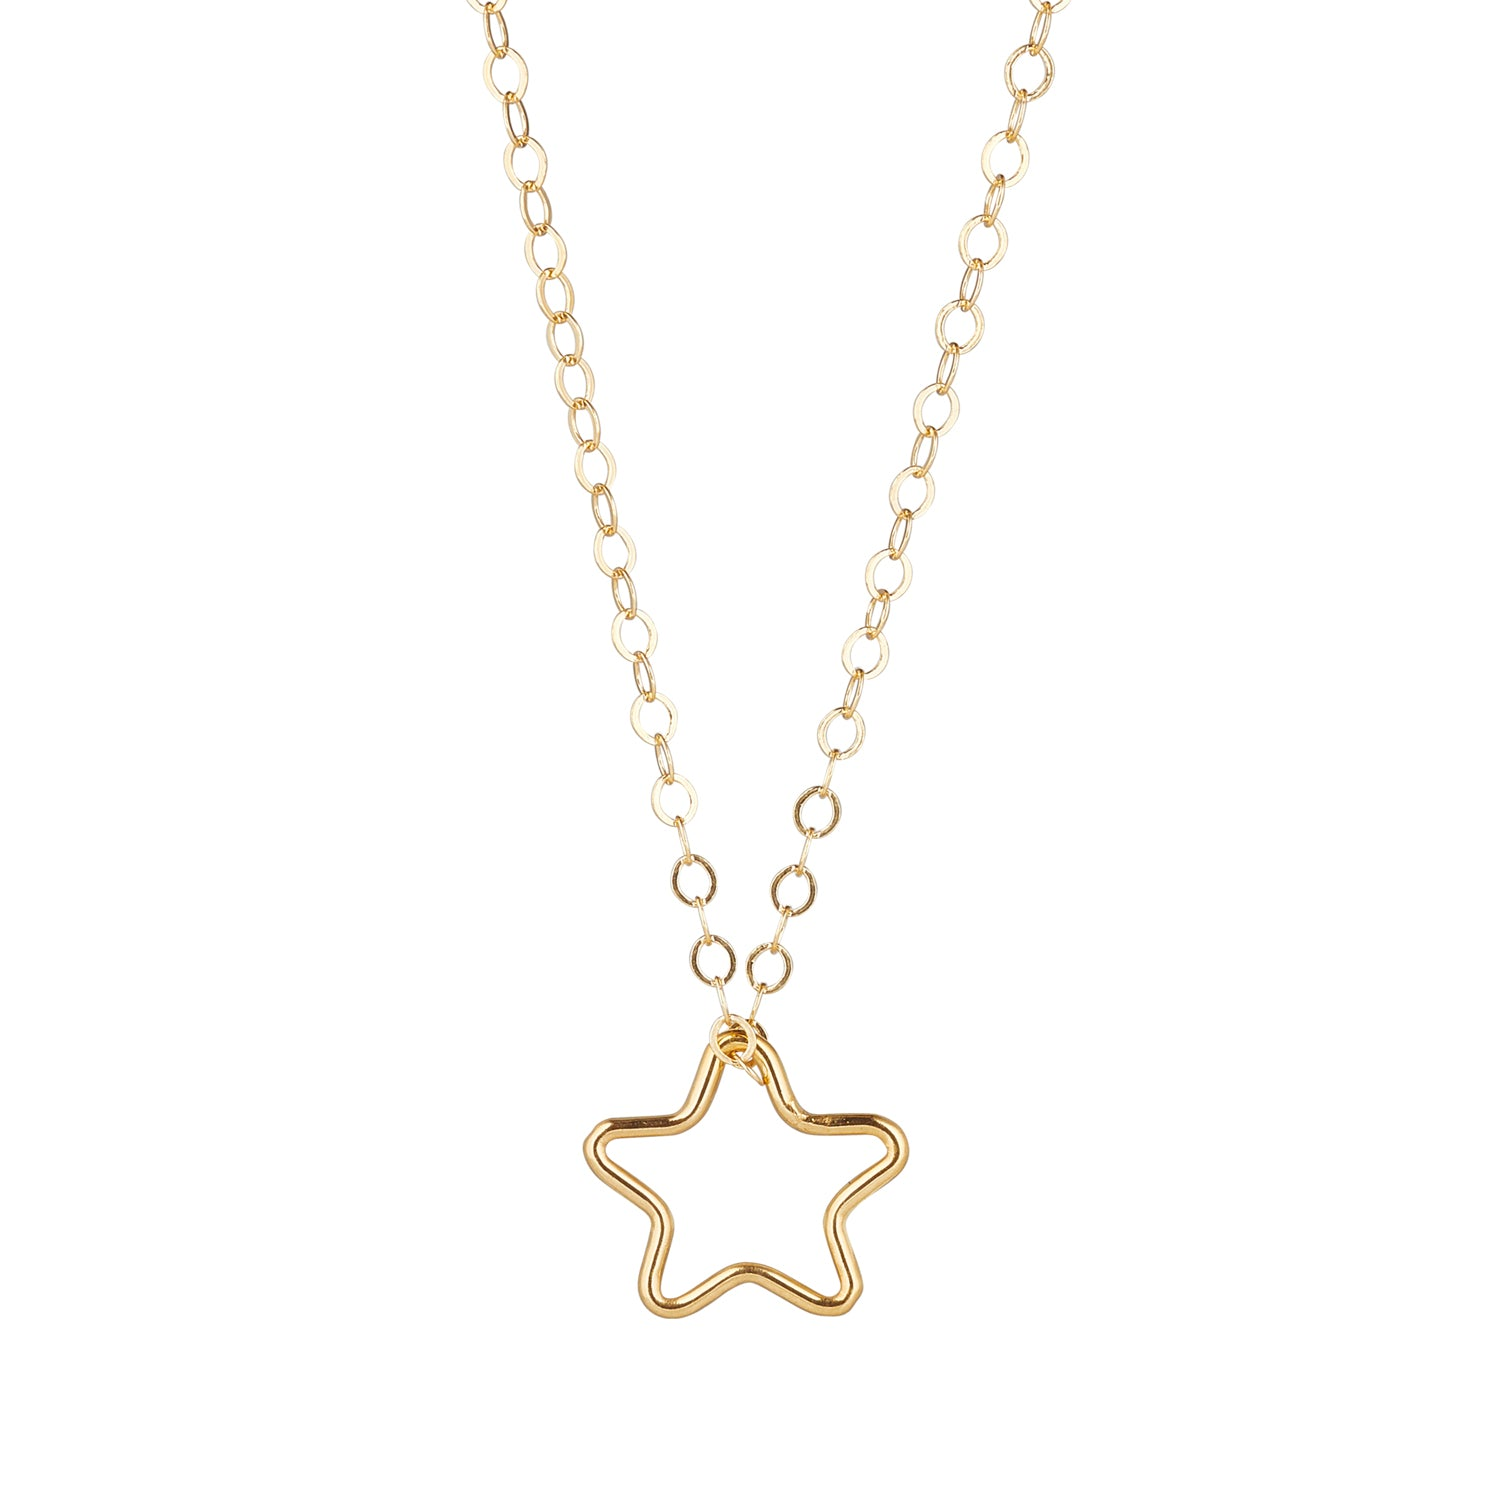 14kt Gold Filled Chain with Star Pendant - MoMuse Jewellery